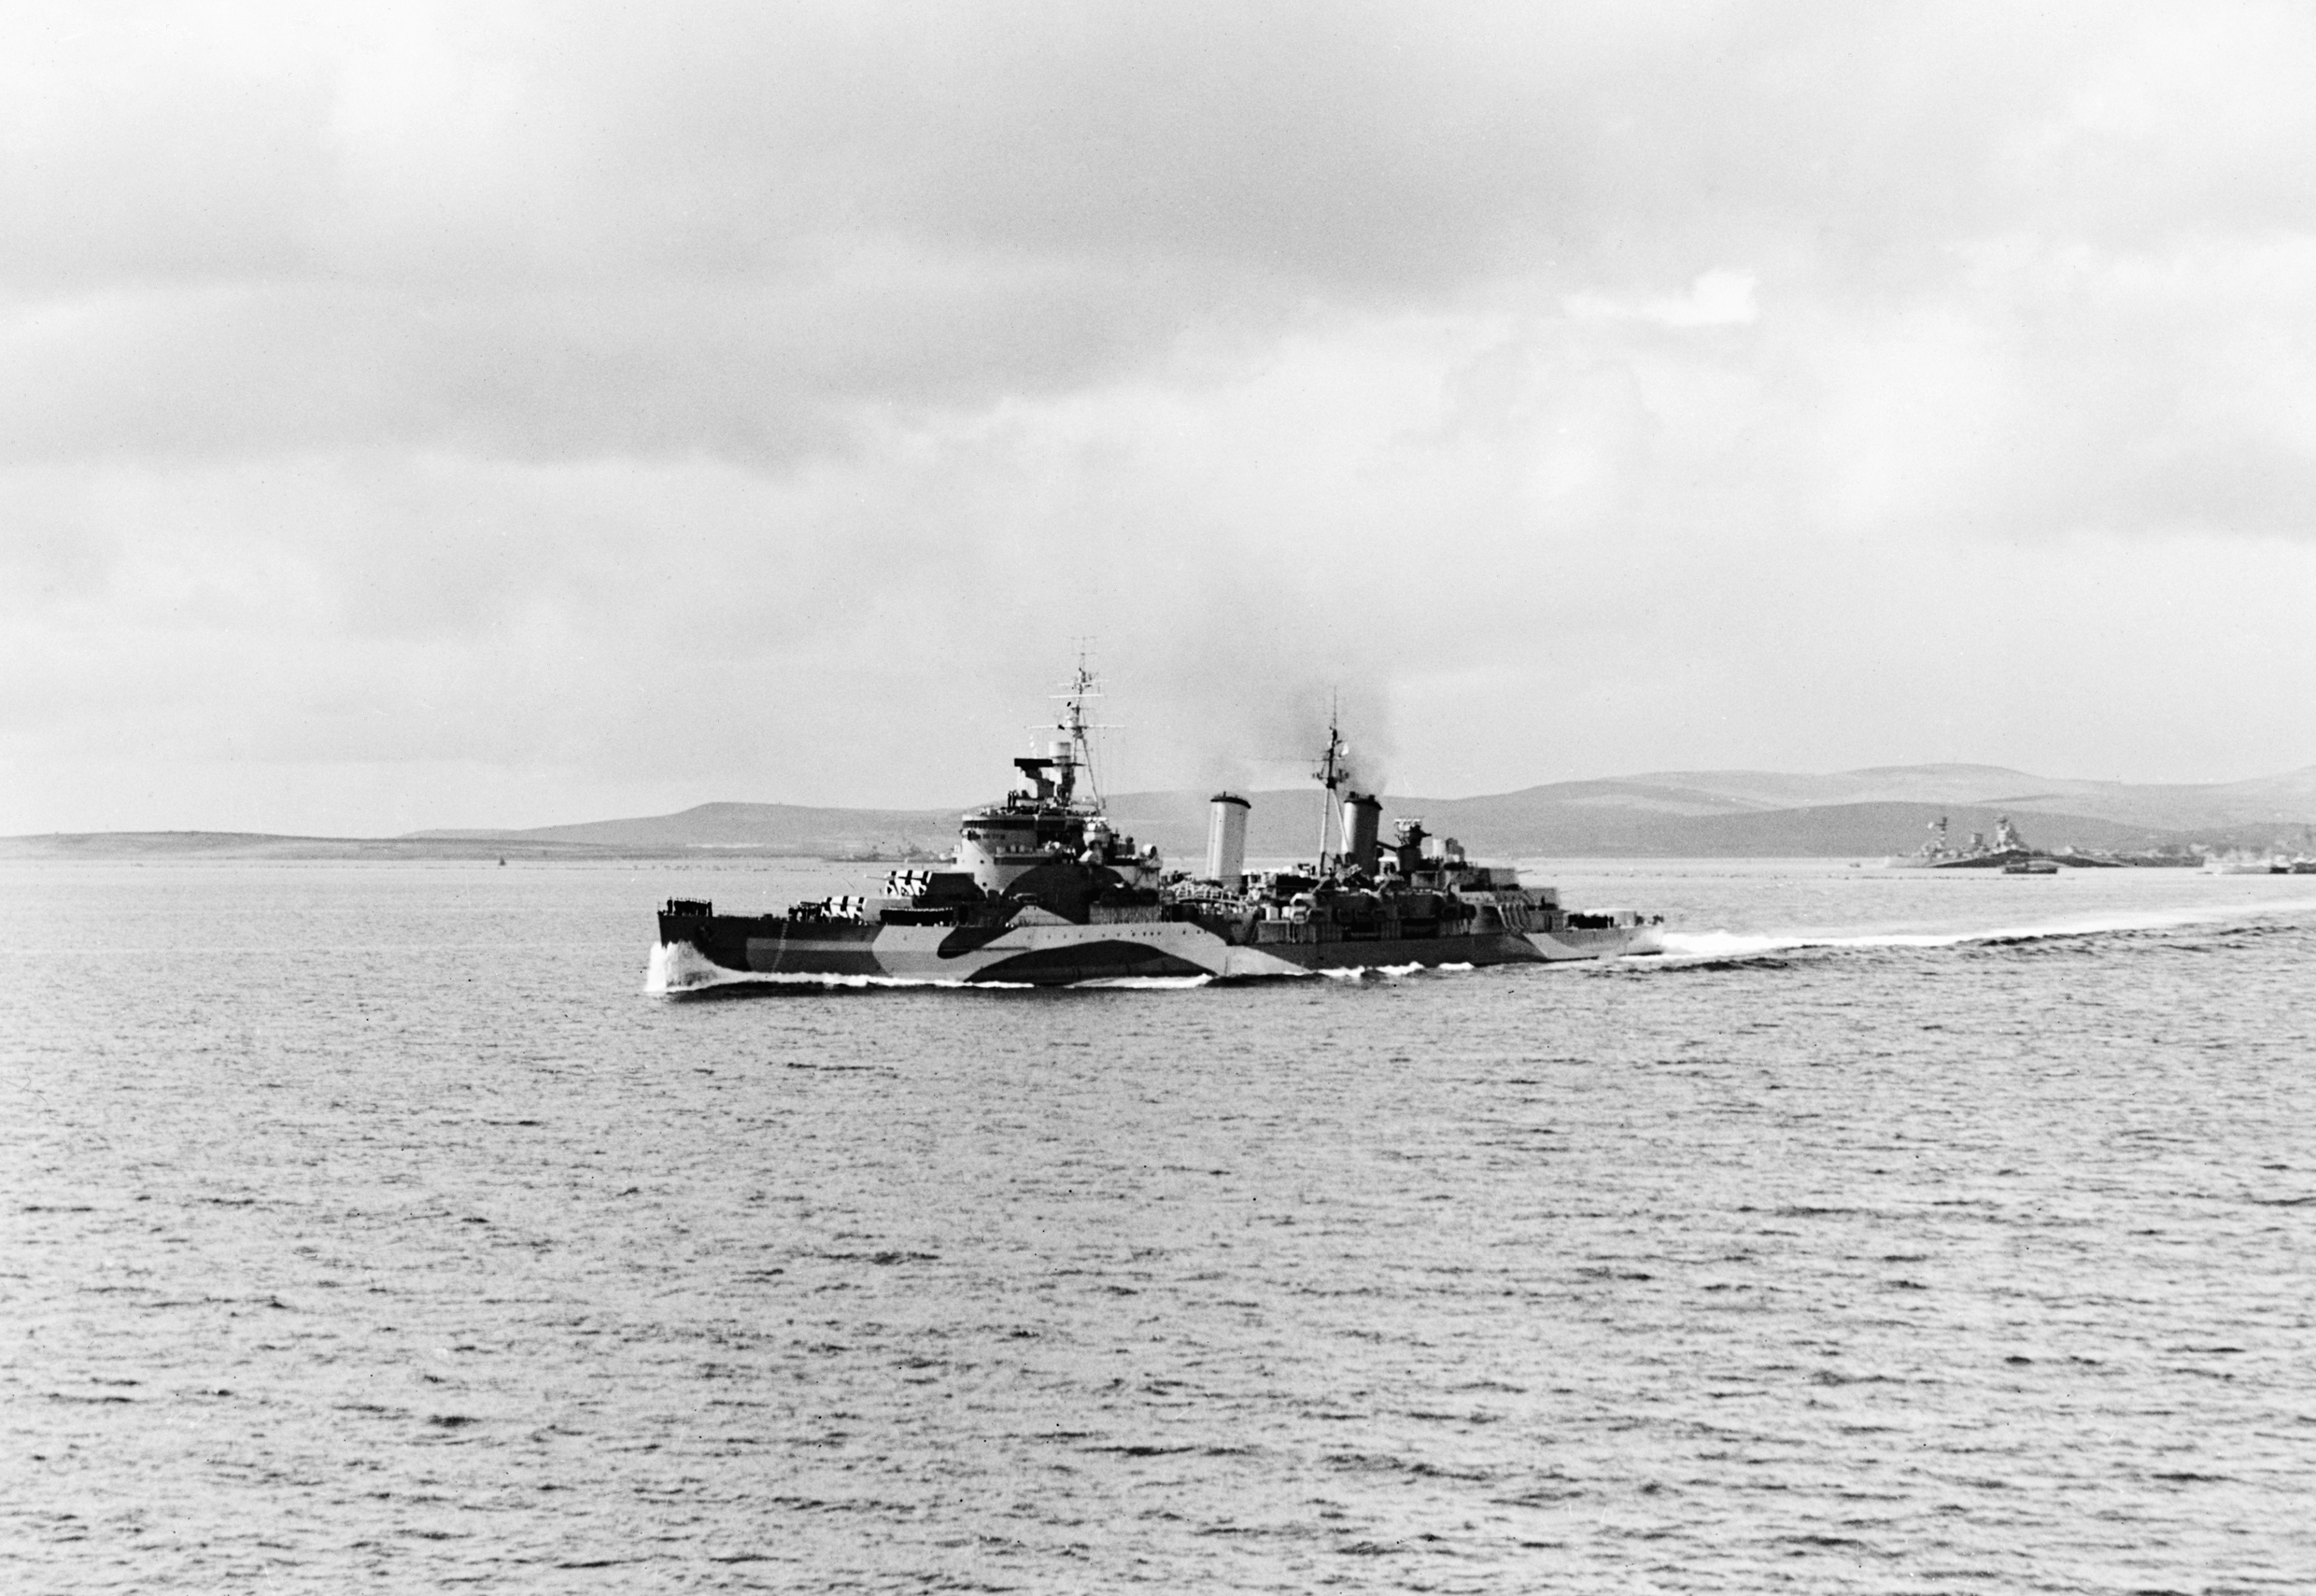 © IWM (A 25665) HMS Belfast leaving Scapa Flow for the Normandy beaches in June 1944. The cruiser is reported to have fired some of the first shots on D-Day.